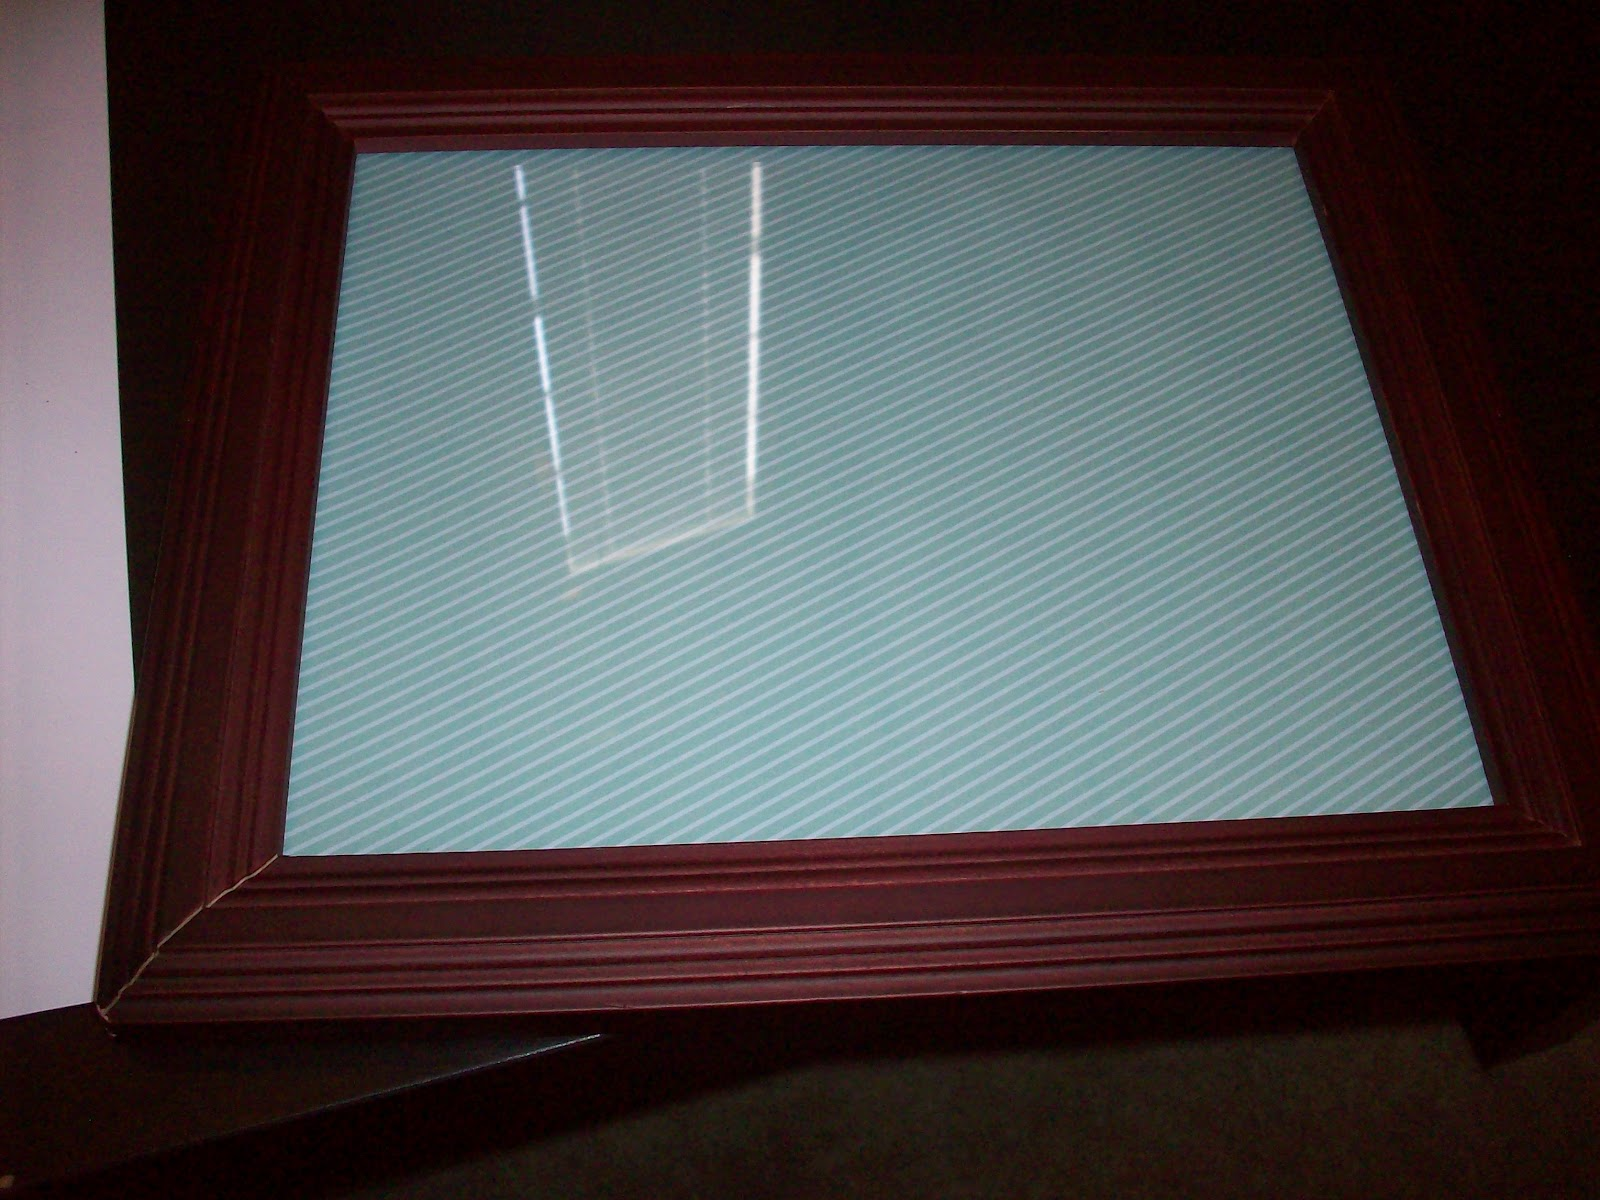 How to put scrapbook back together - Put The Frame Back Together With The Scrapbook Paper As Your Picture